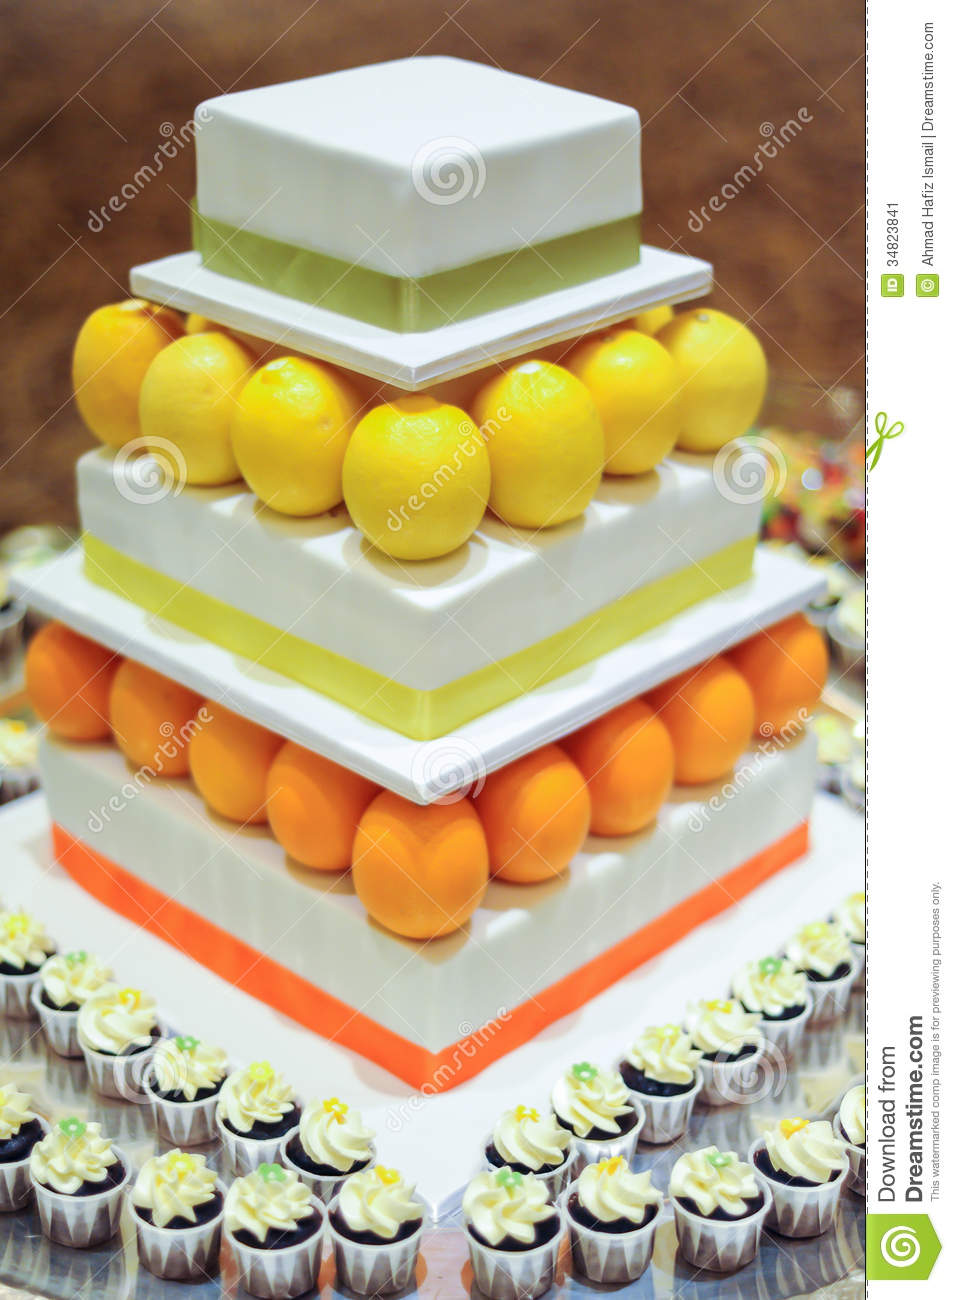 Orange Lemon 3 Tier White Wedding Cake With Mini Cupcakes Stock Image ...